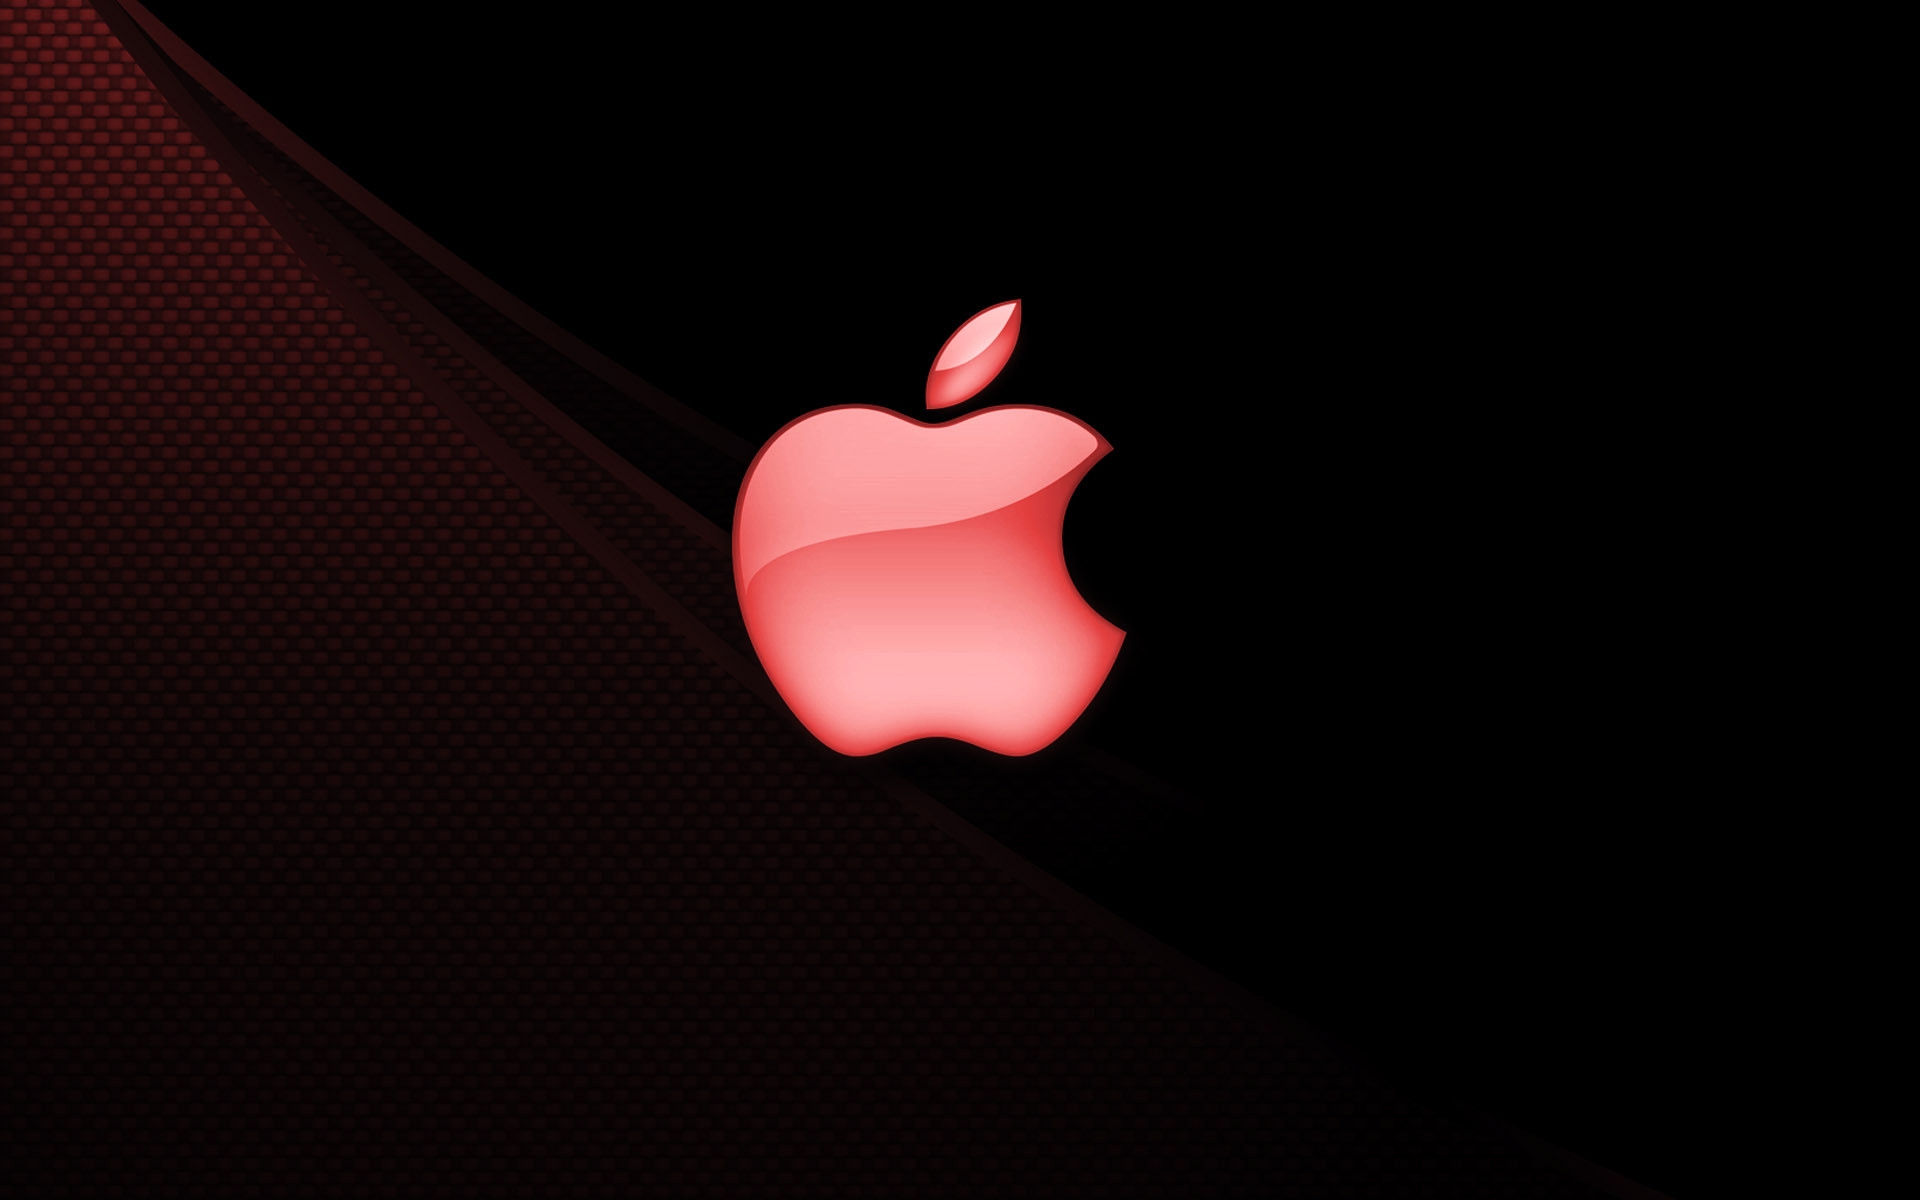 apple wallpaper red and black images